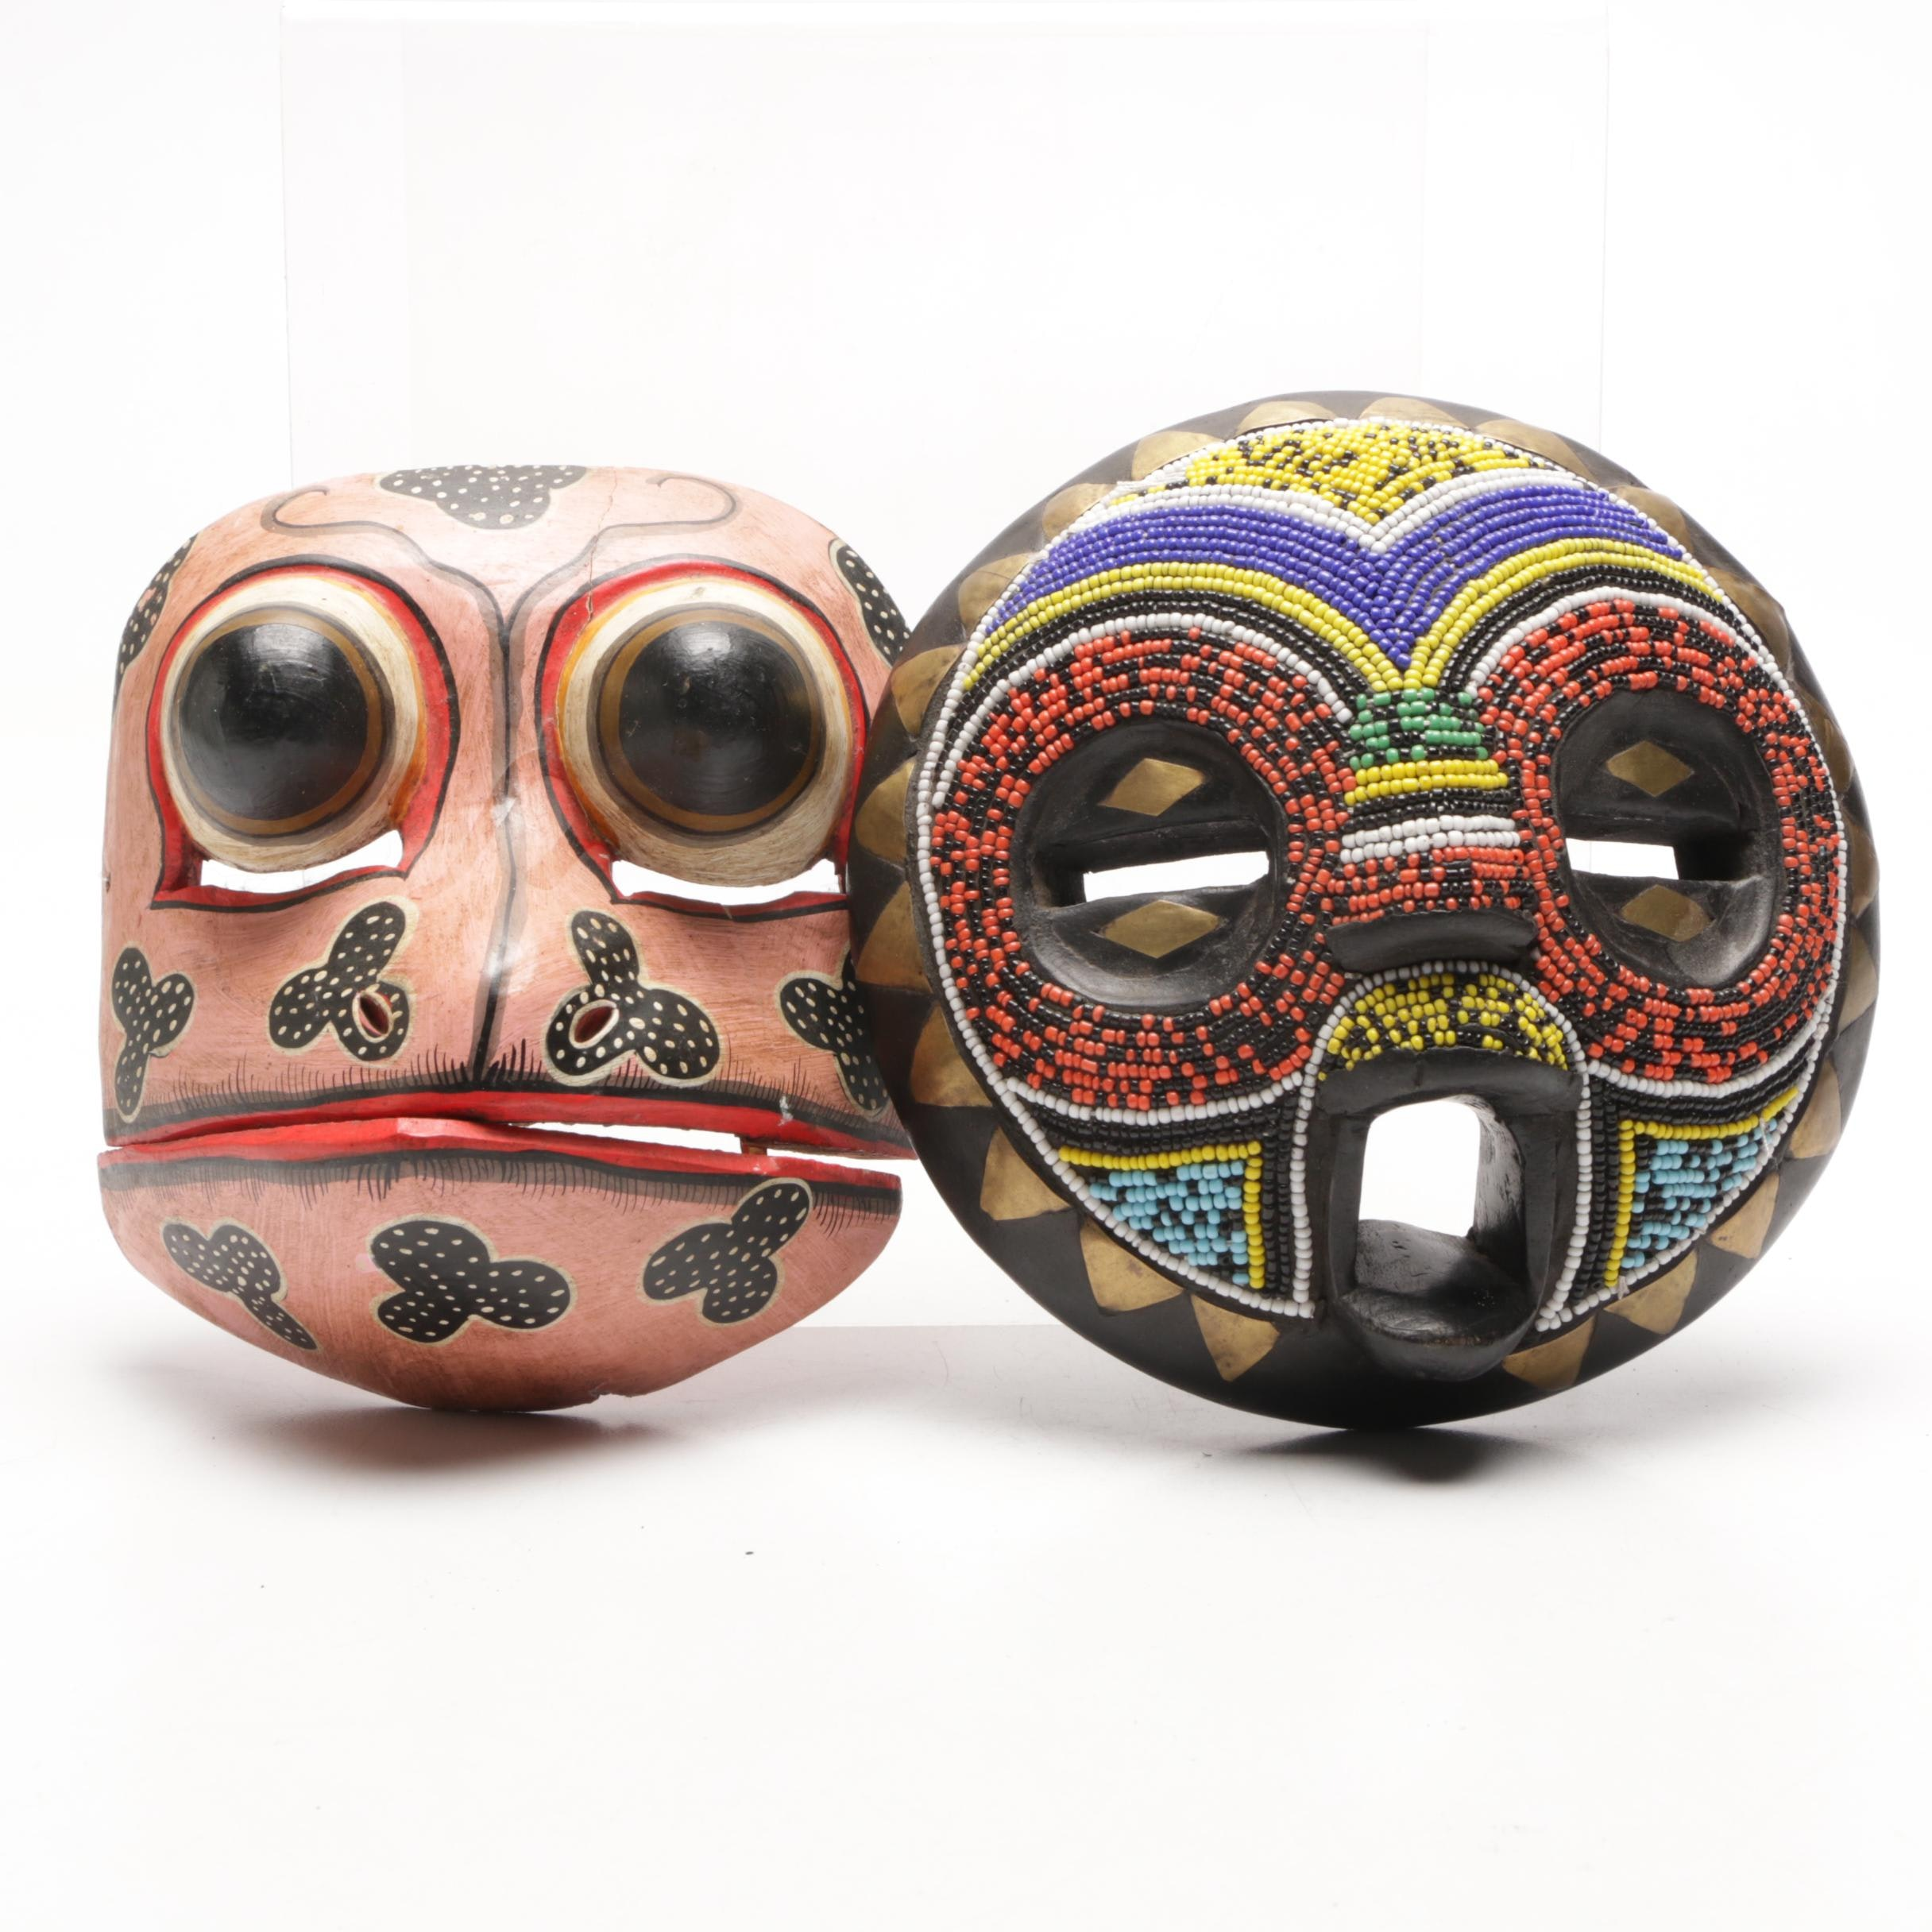 Hand Carved African Baluba Mask with Indonesian Batik Tribal Frog Mask